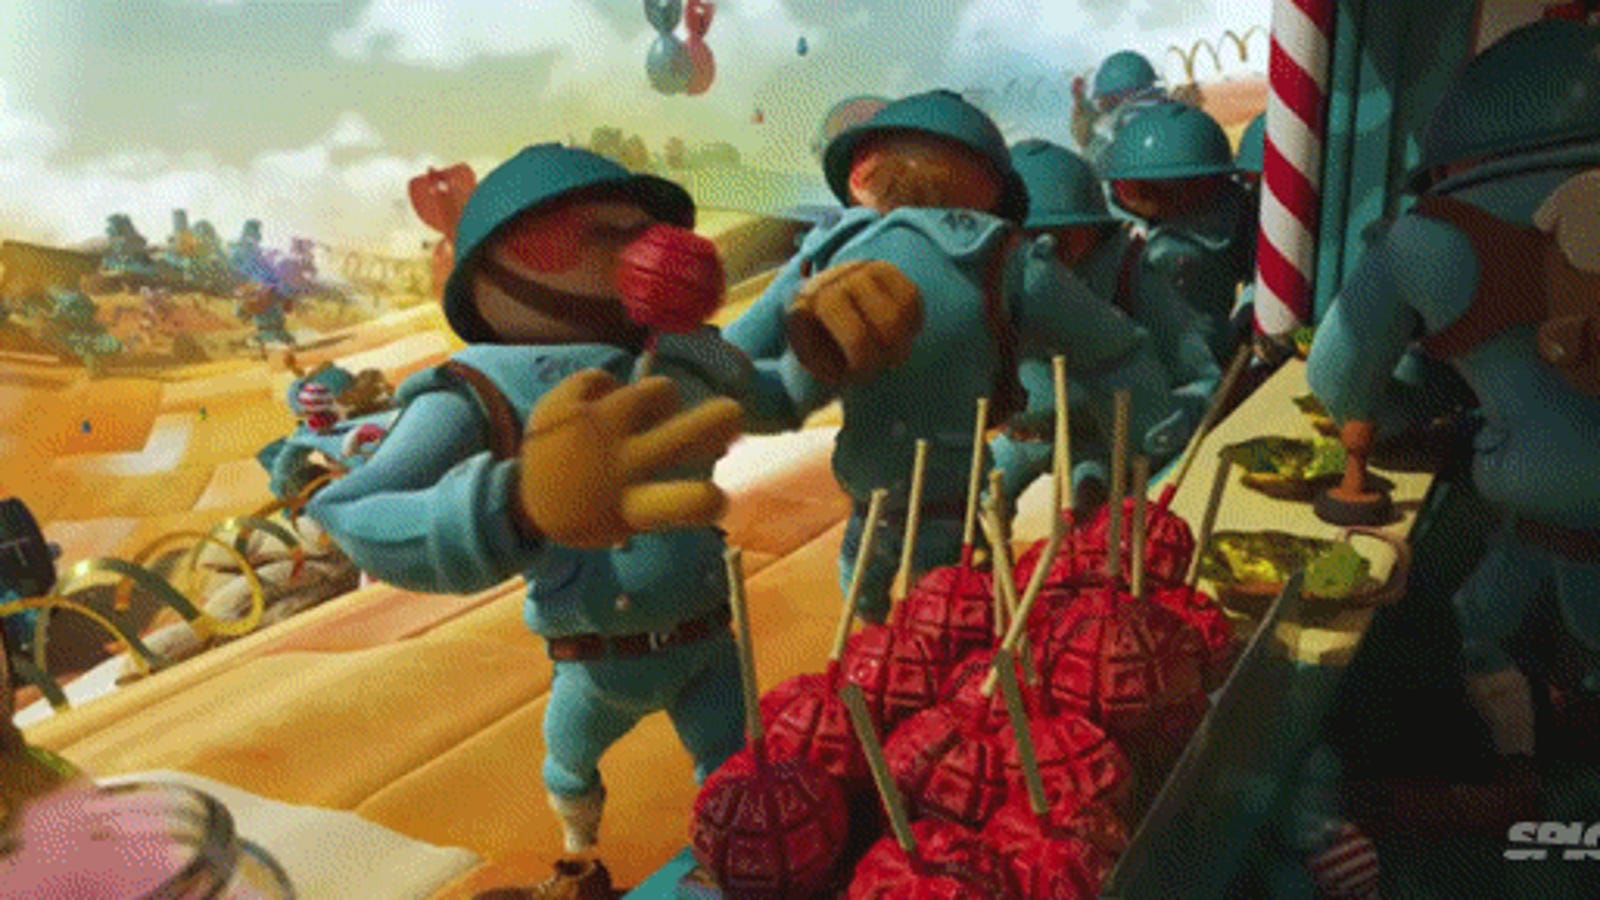 Short film: What happens when plastic toys go to war